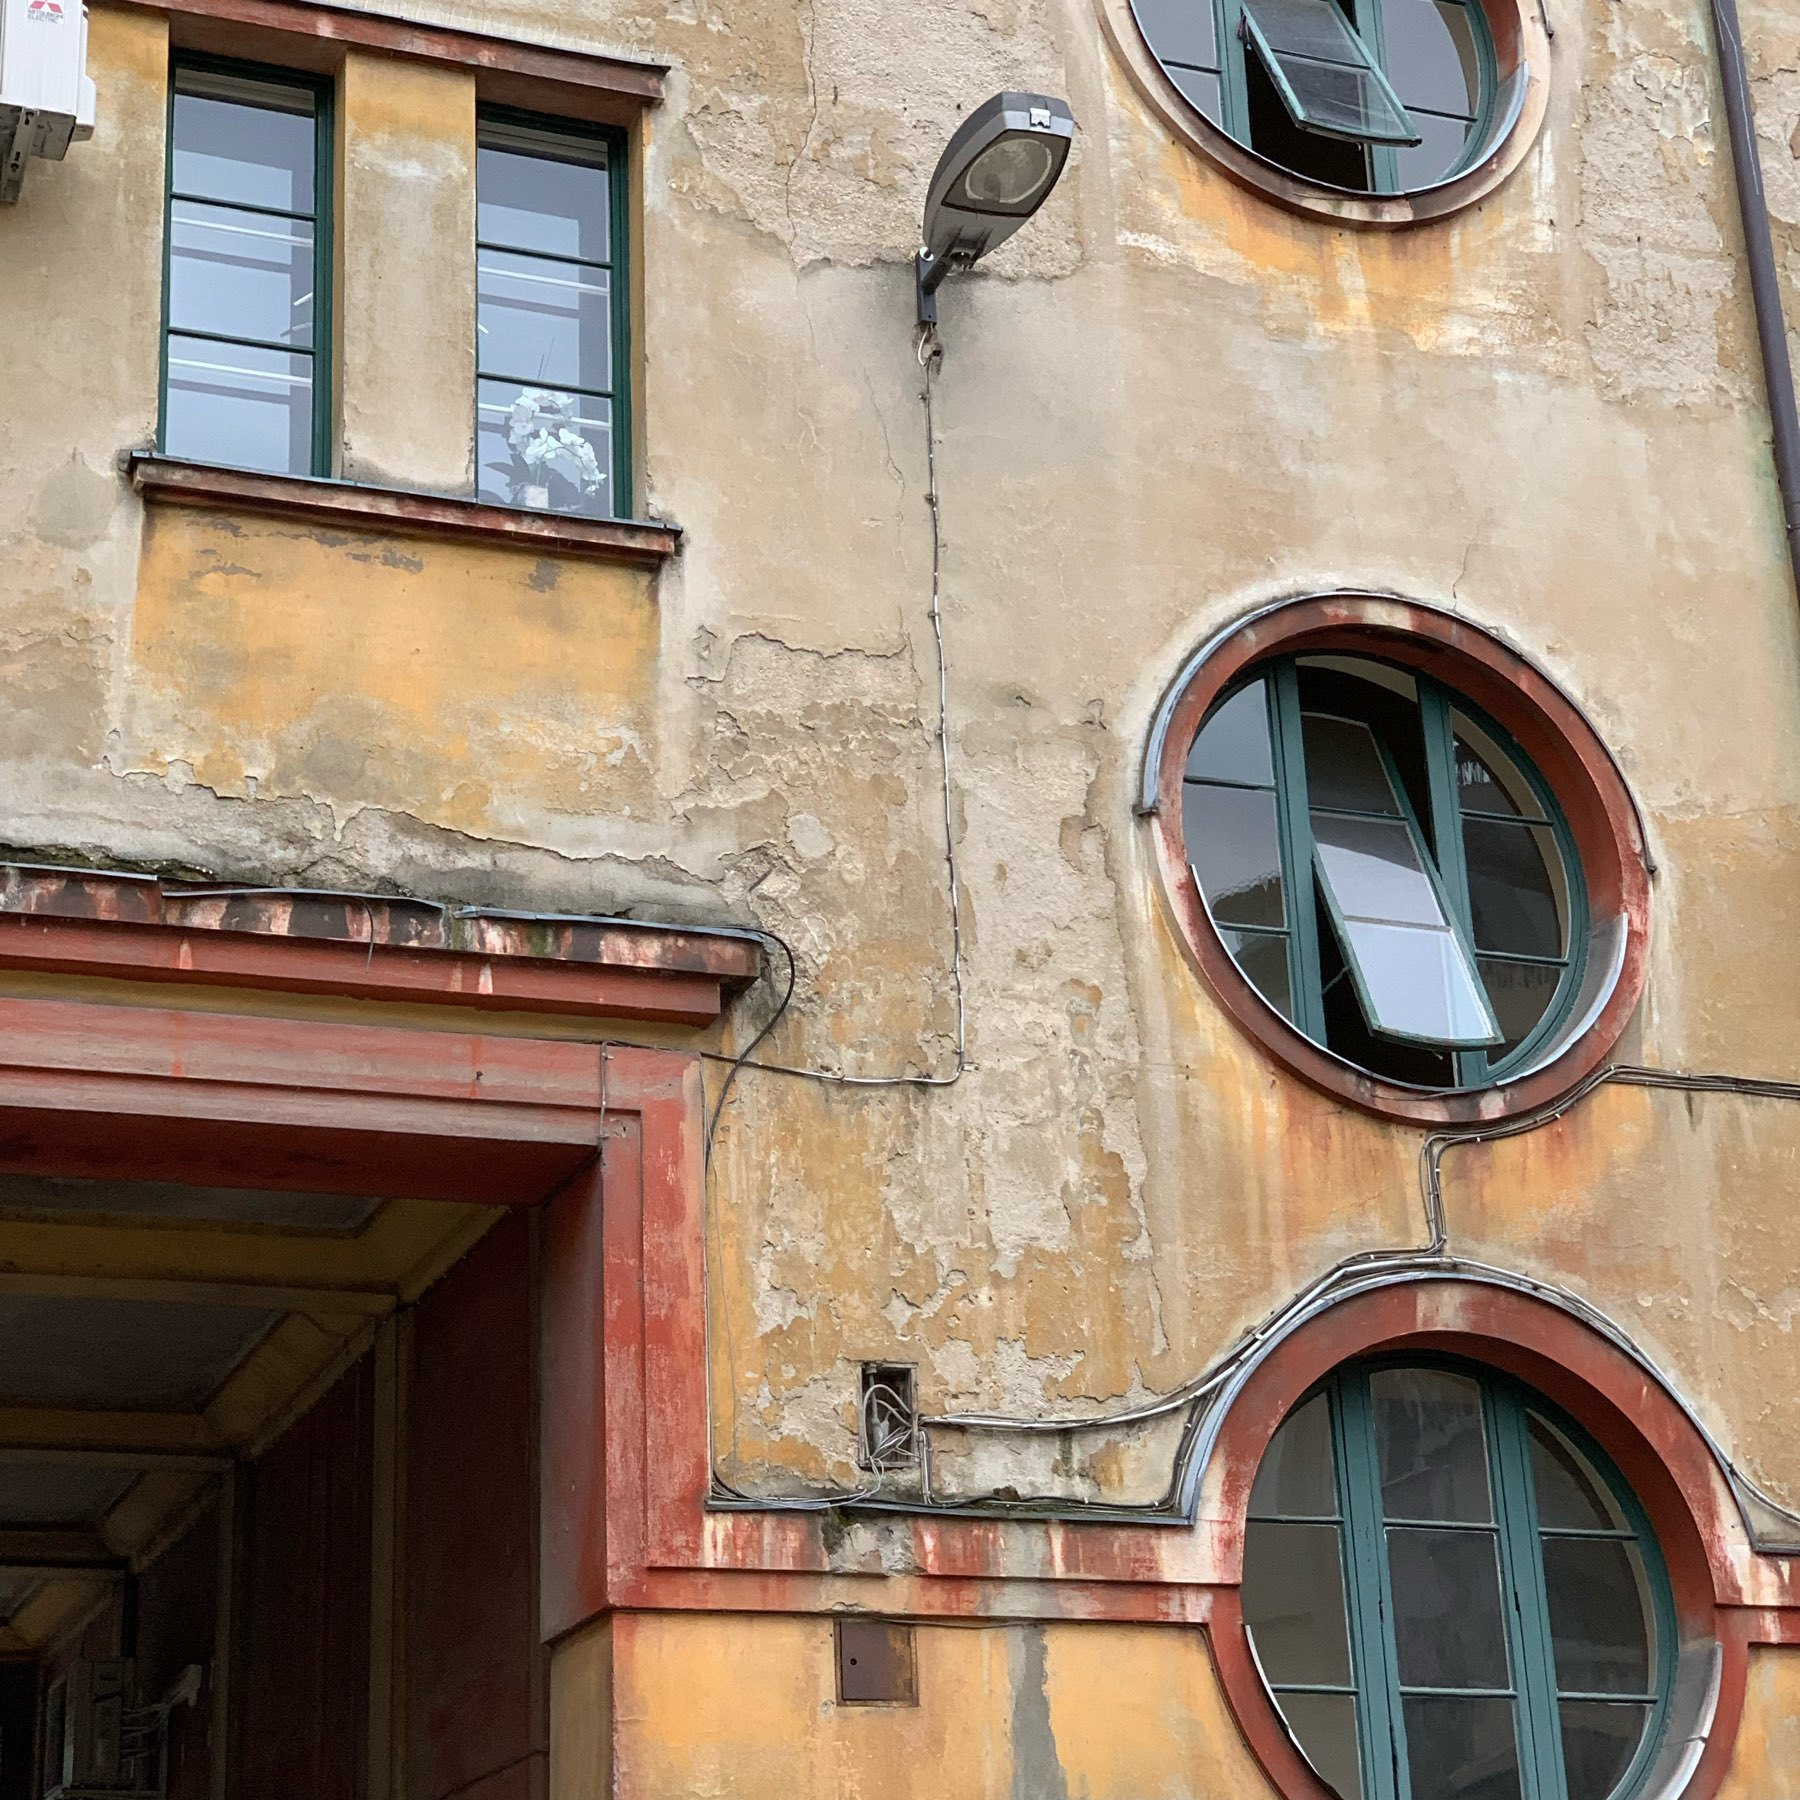 unusual round windows in old apartment block